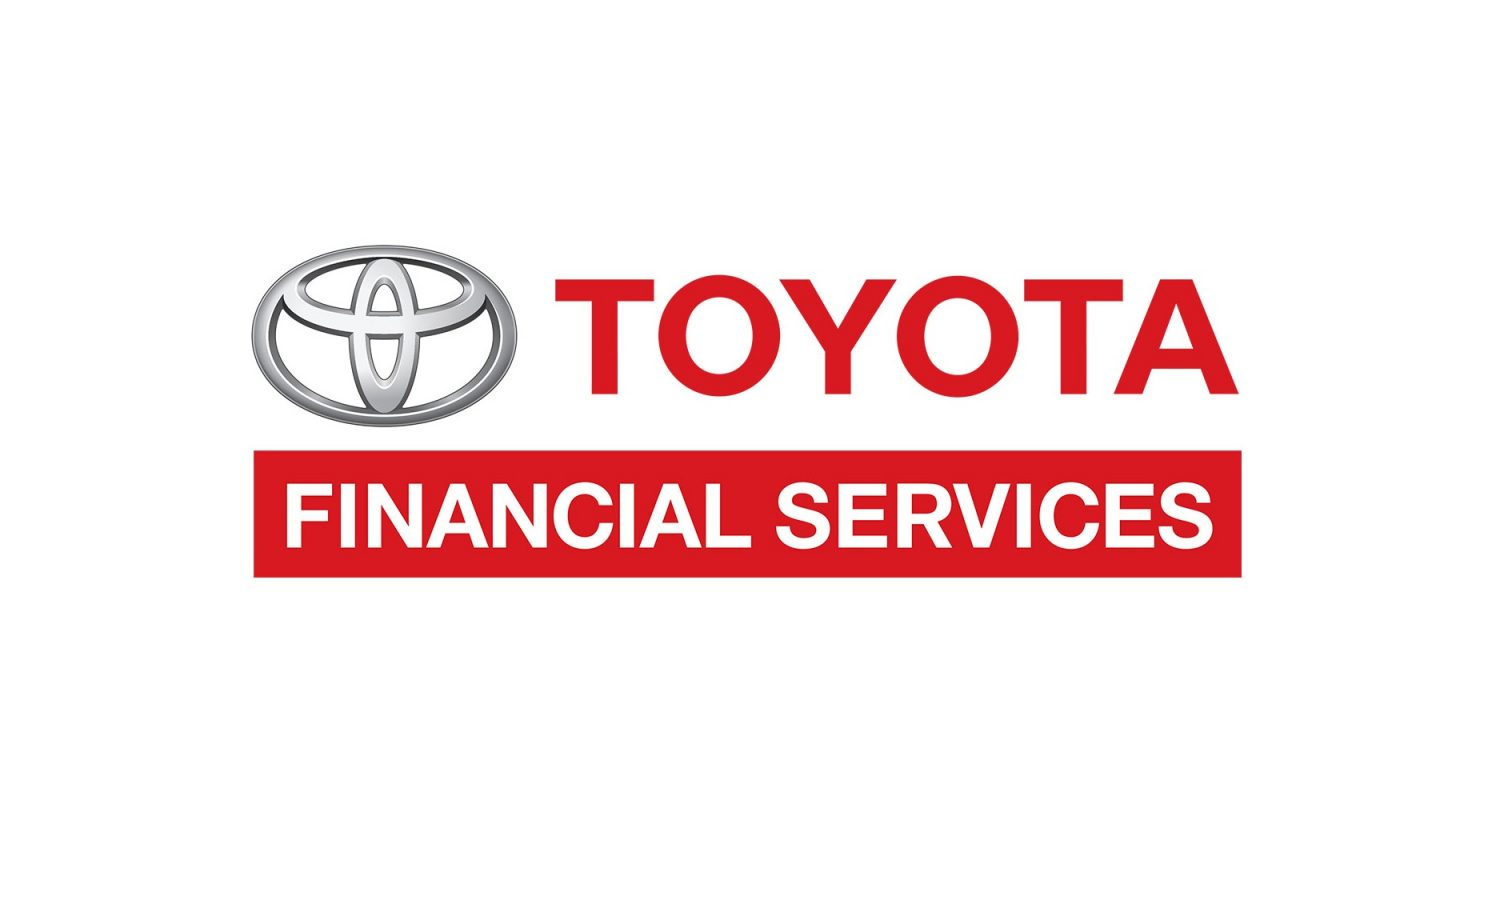 Toyota Financial Services Offers Payment Relief to Customers Affected by Tennessee Tornados